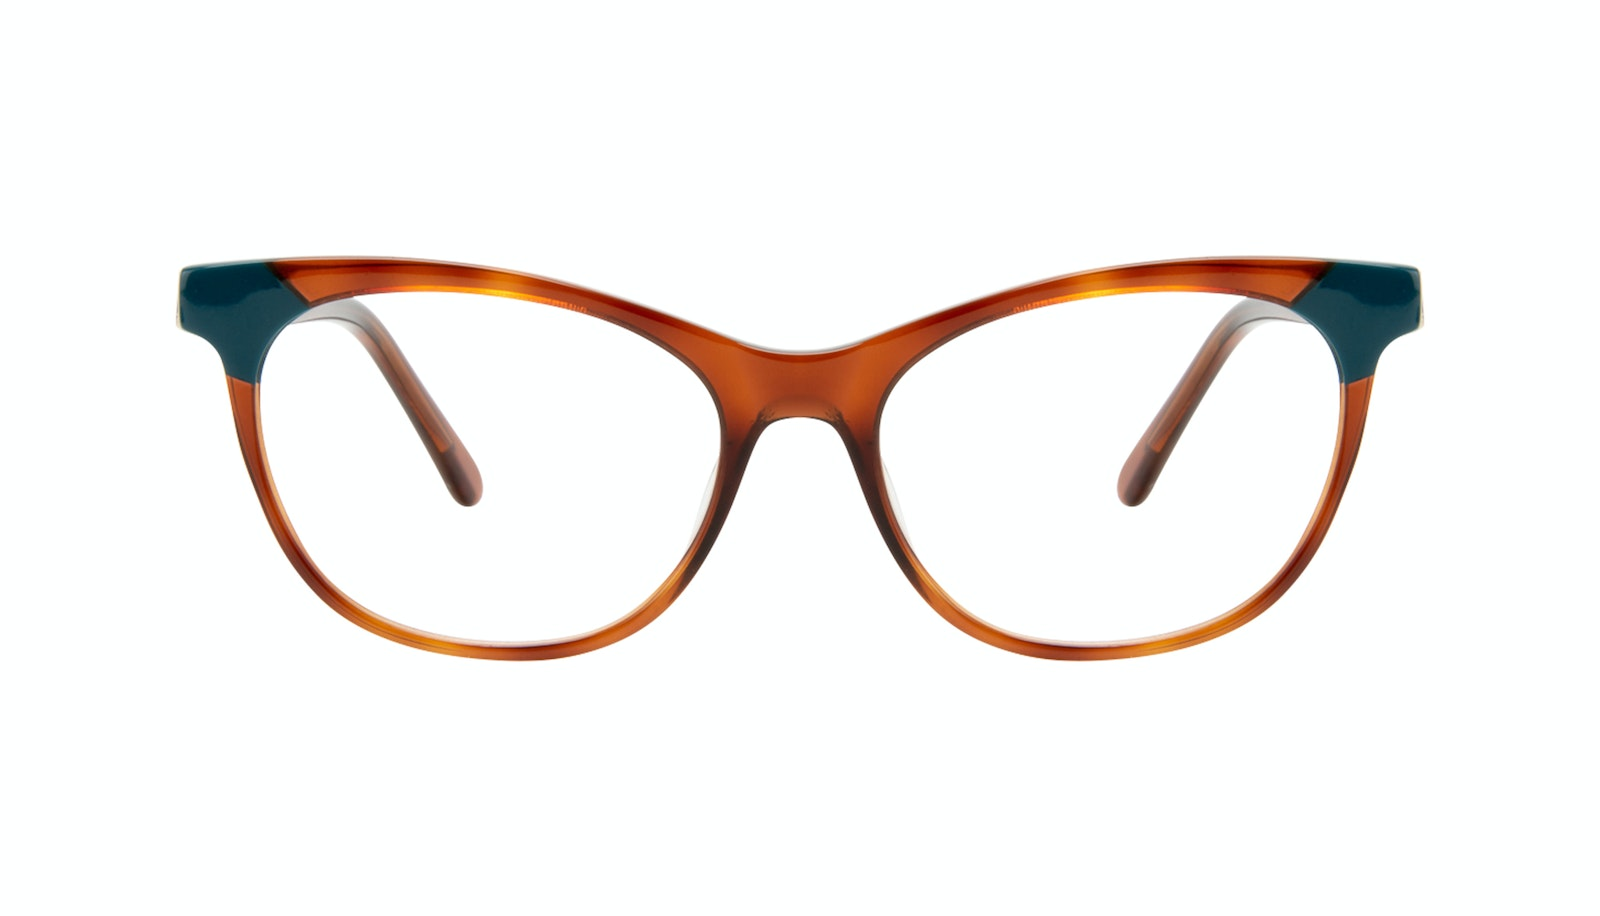 Affordable Fashion Glasses Cat Eye Eyeglasses Women Witty Teal Tort